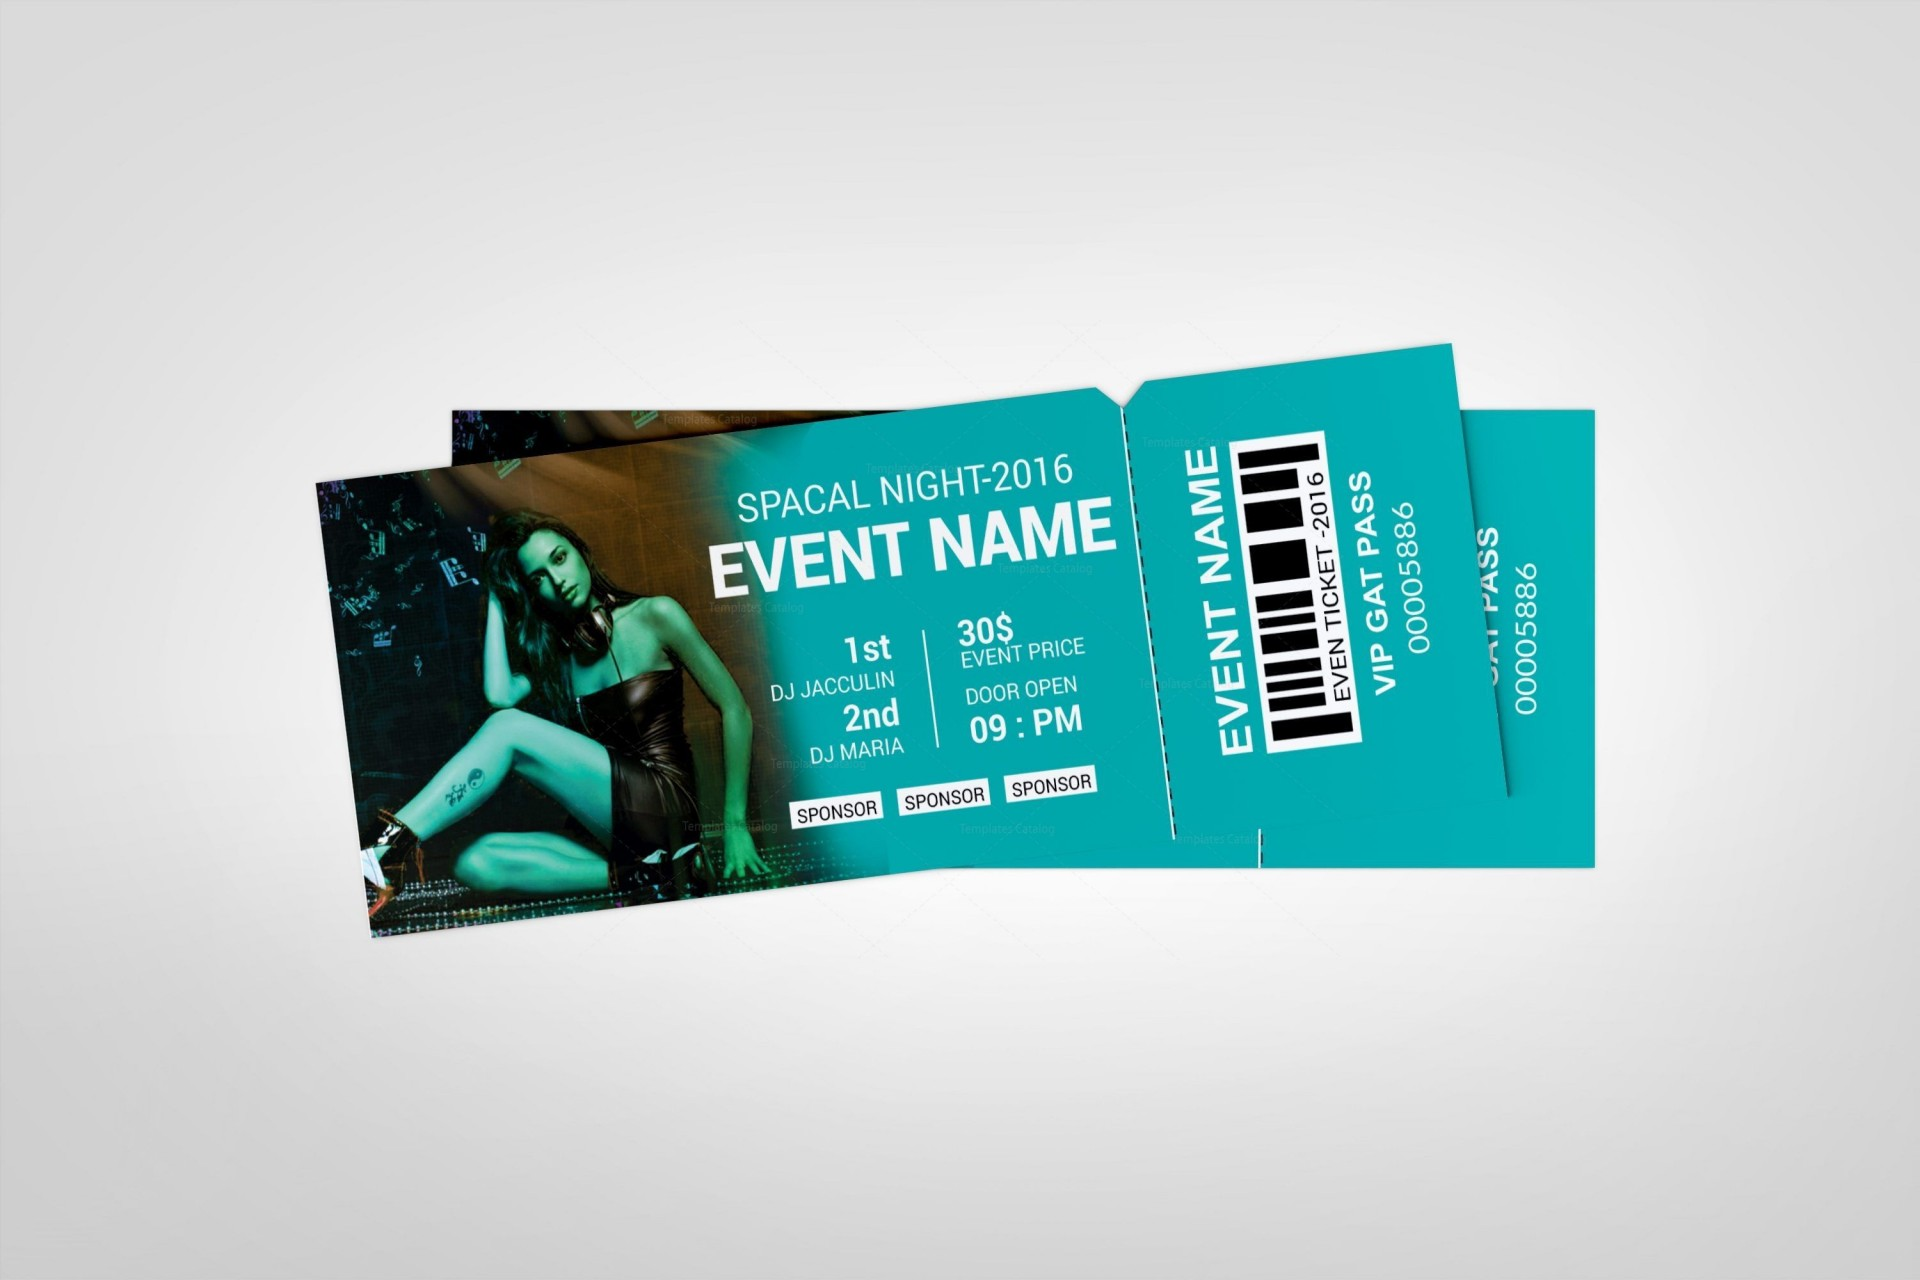 004 Exceptional Event Ticket Template Photoshop Idea  Design Psd Free Download1920